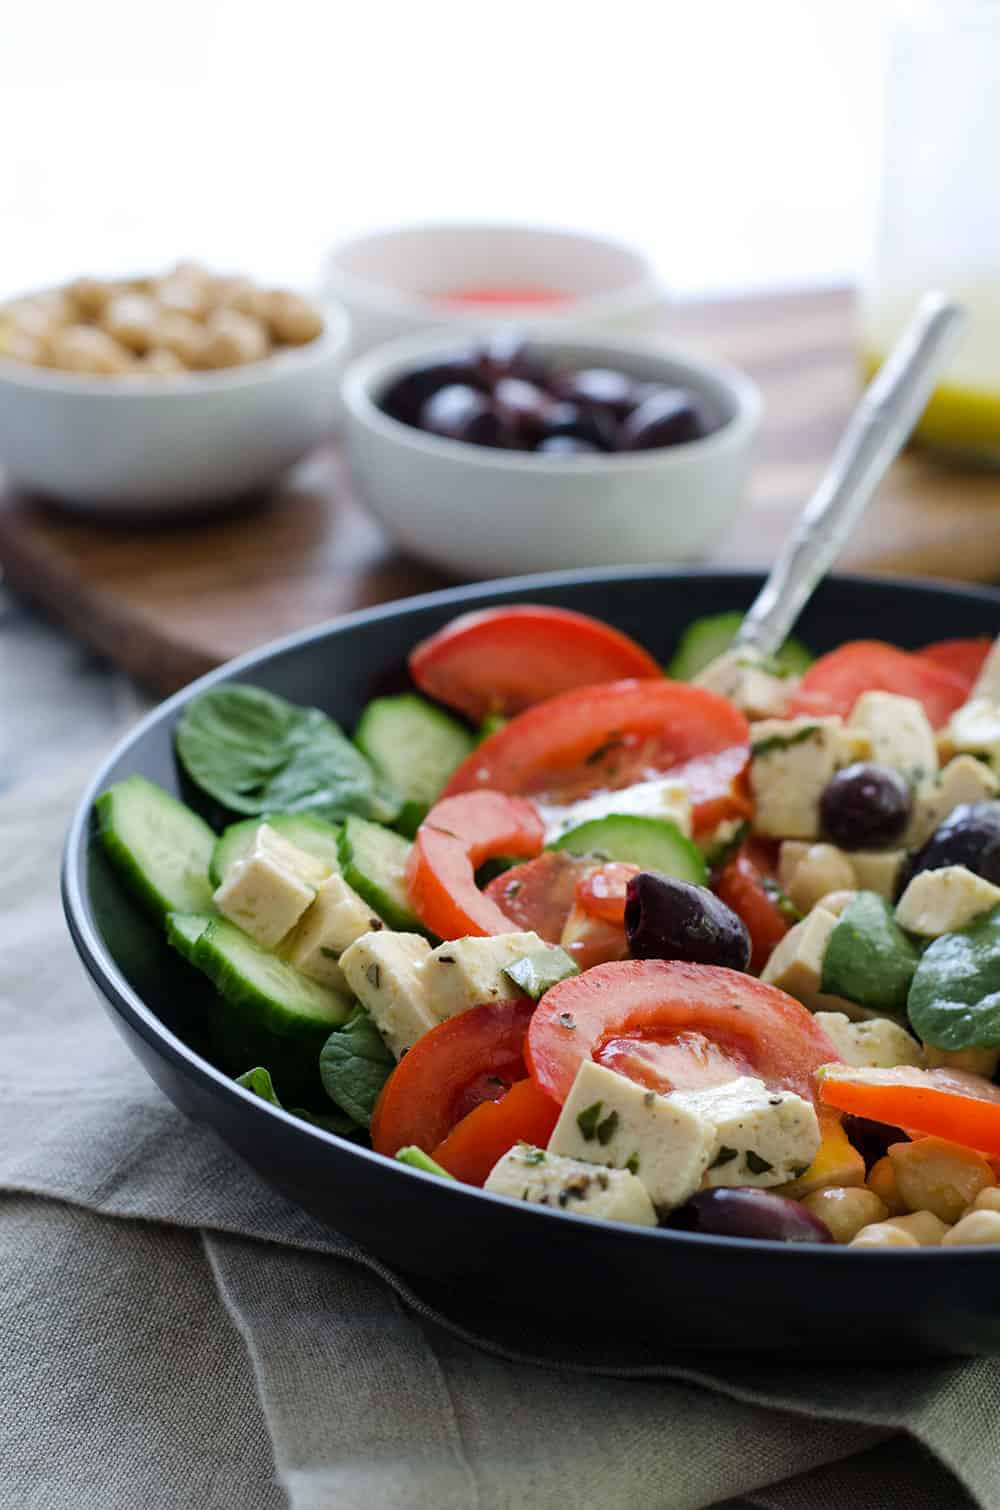 Vegan Greek Salad with Tofu Feta, olives and tomatoes